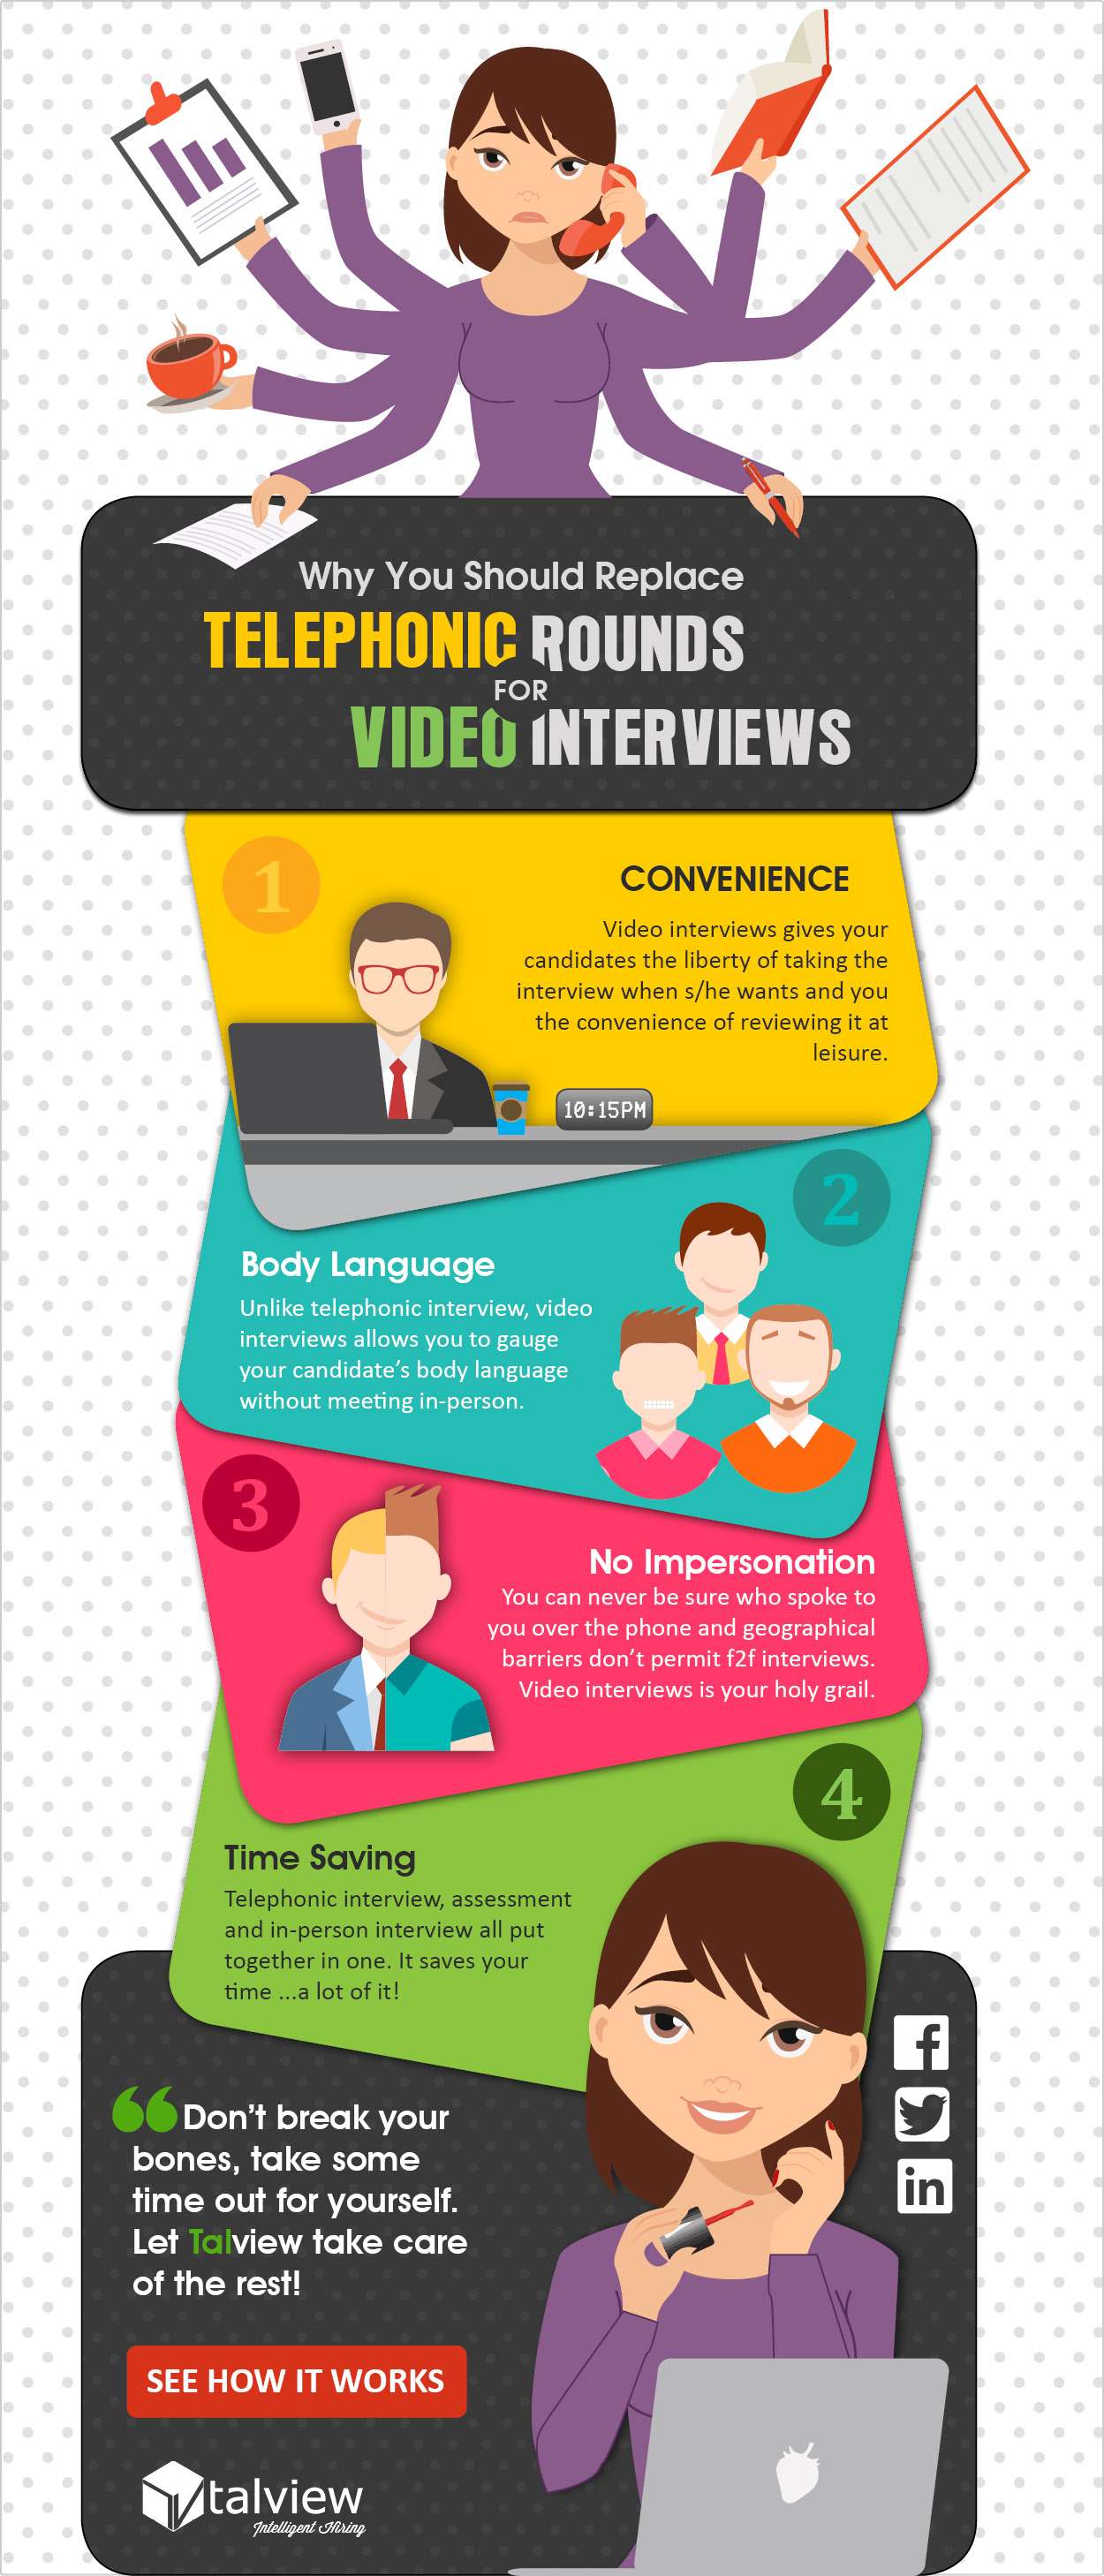 Why Video Interviews Instead of Telephonic